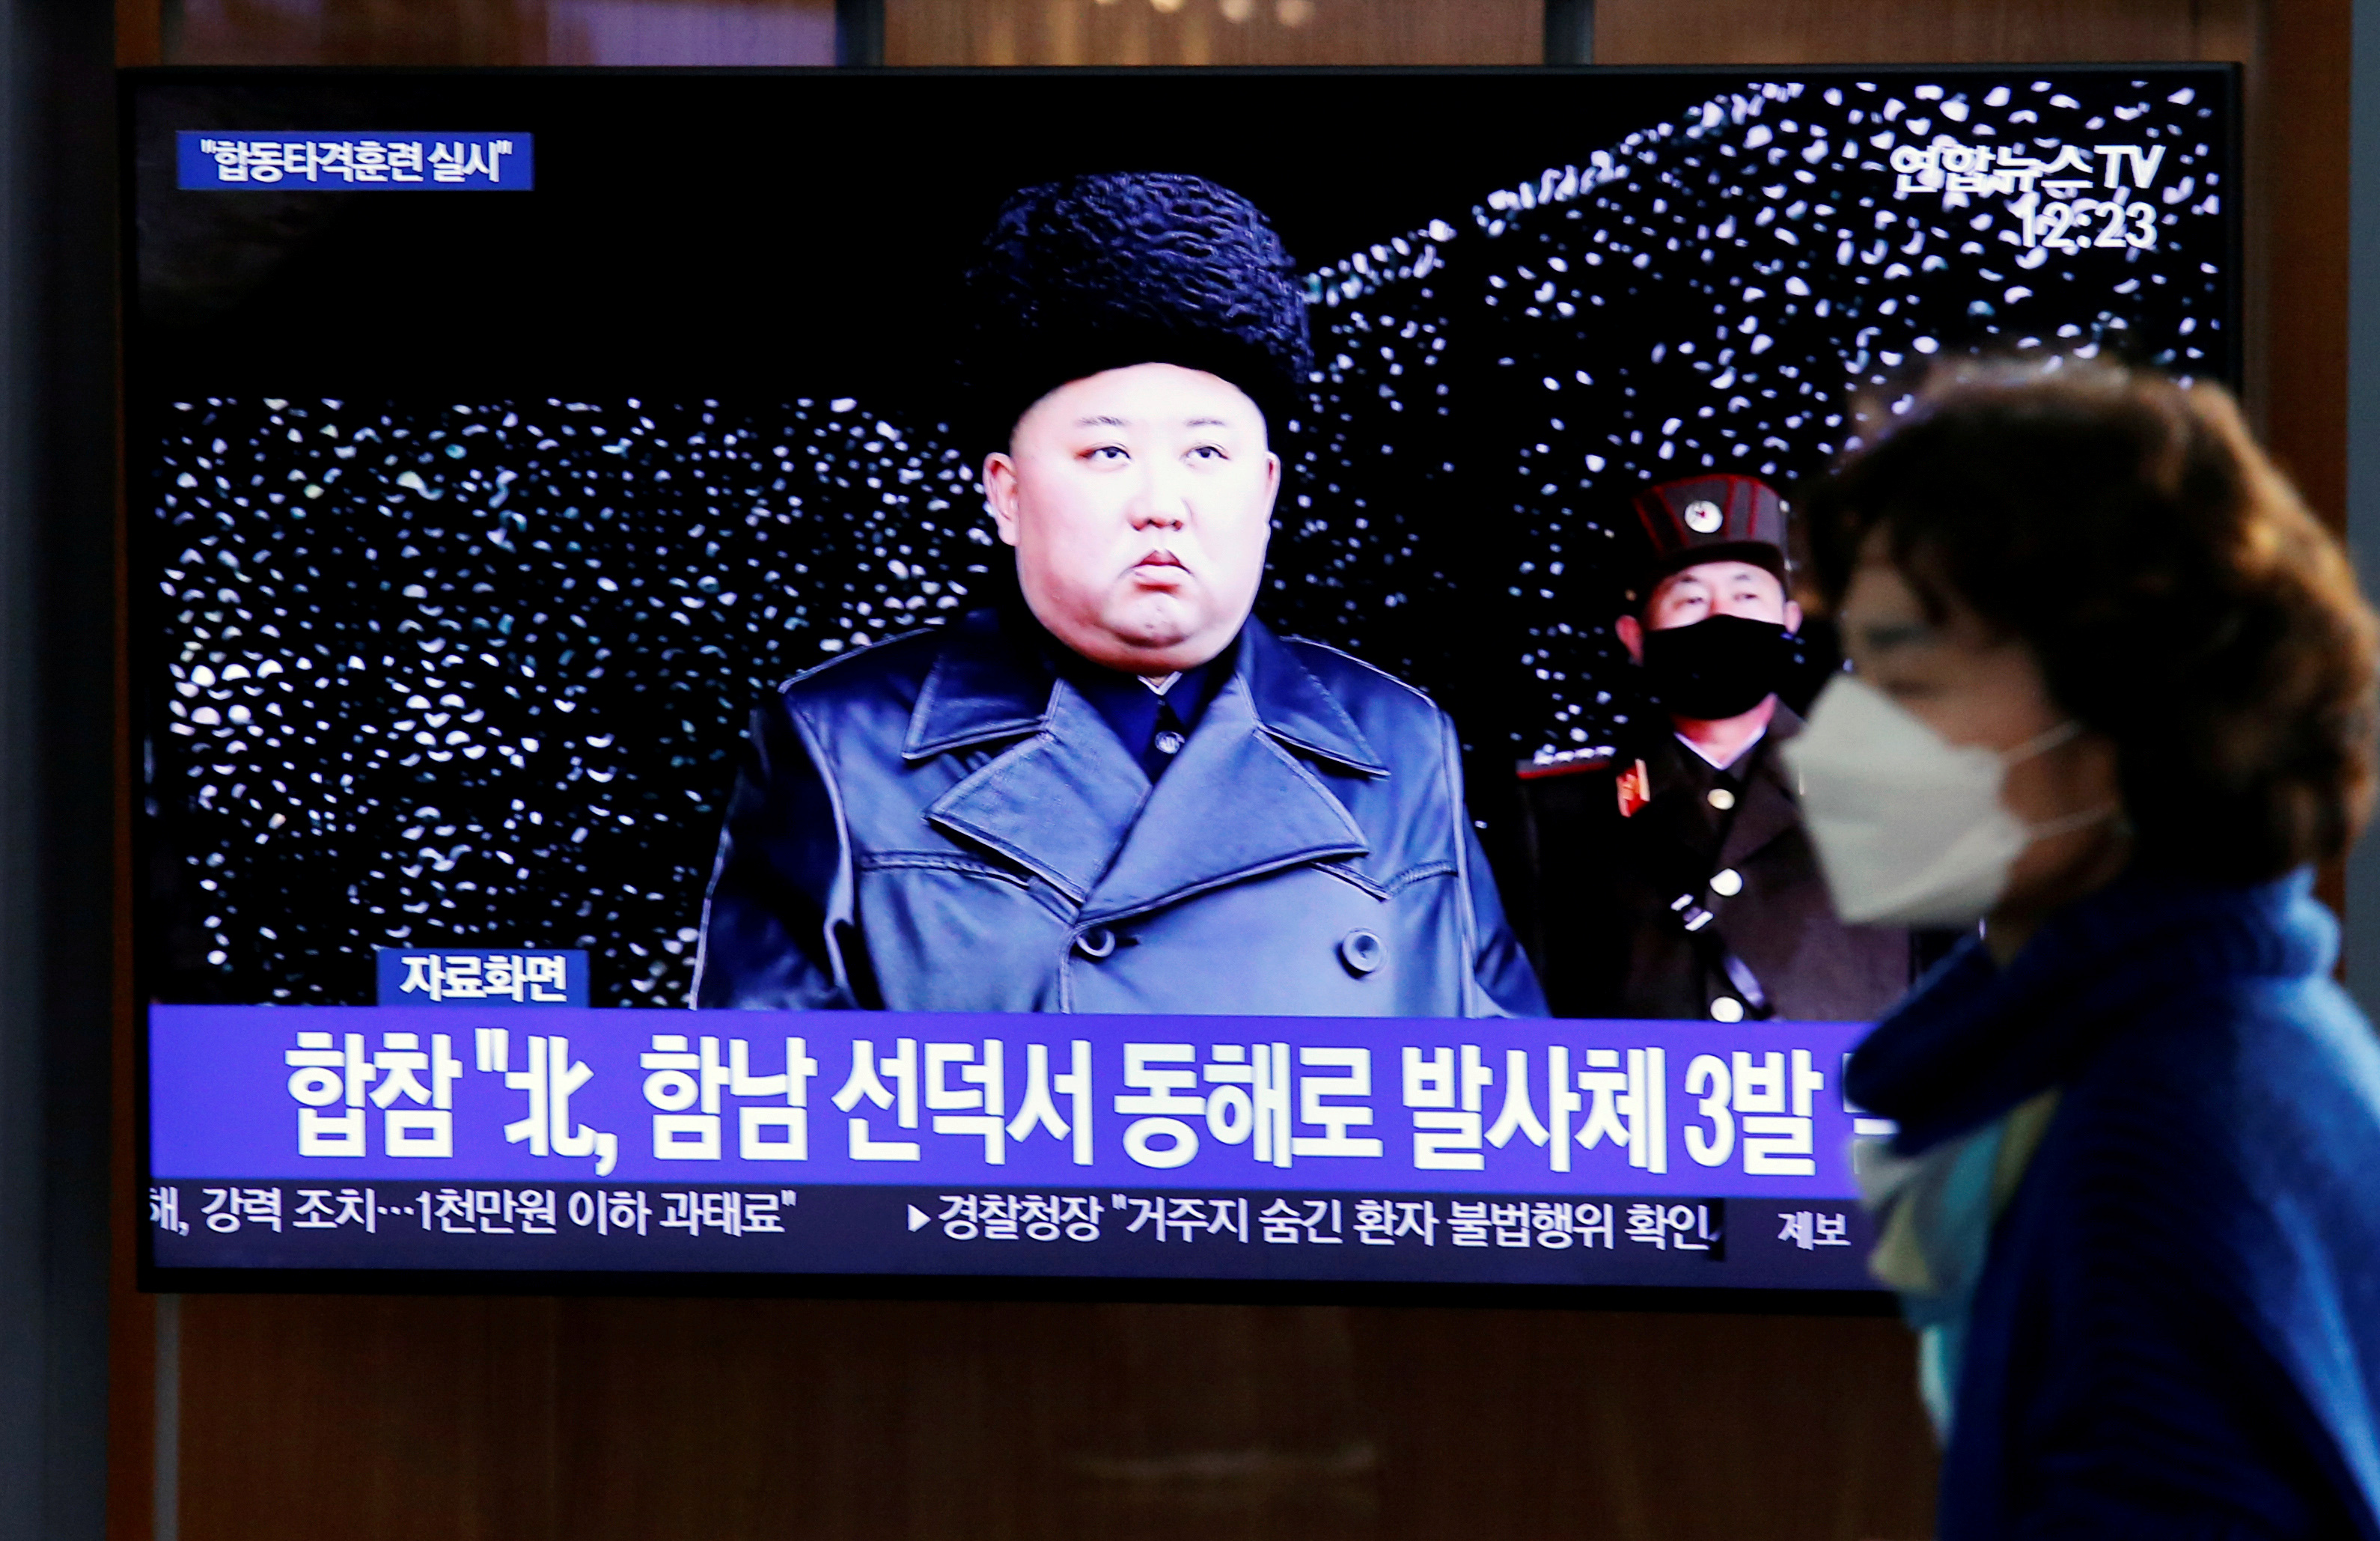 North Korea Warns Of Naval Tensions During Search For South Korean's Body